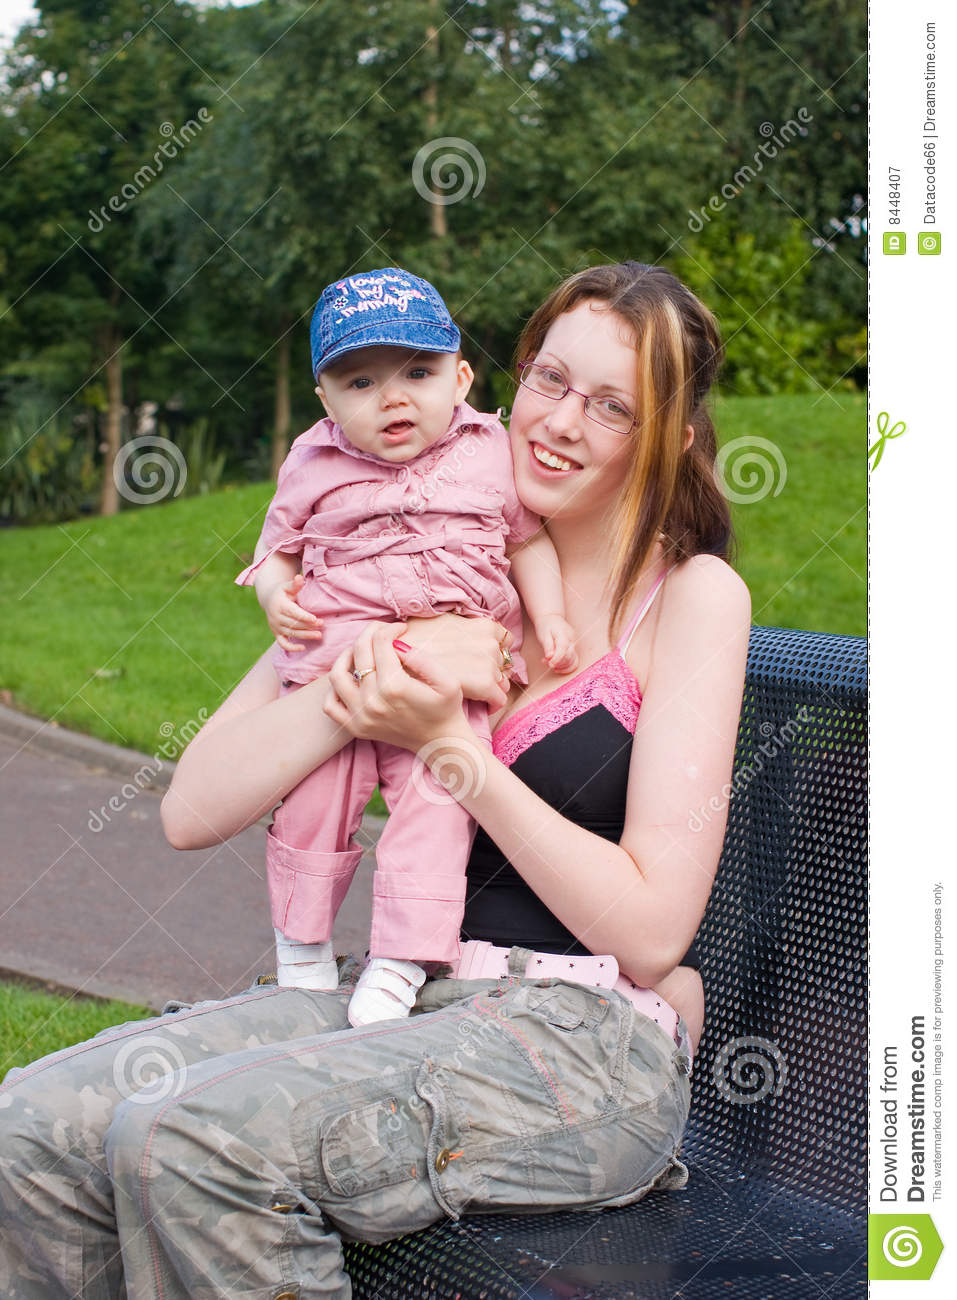 Mother and child in the park